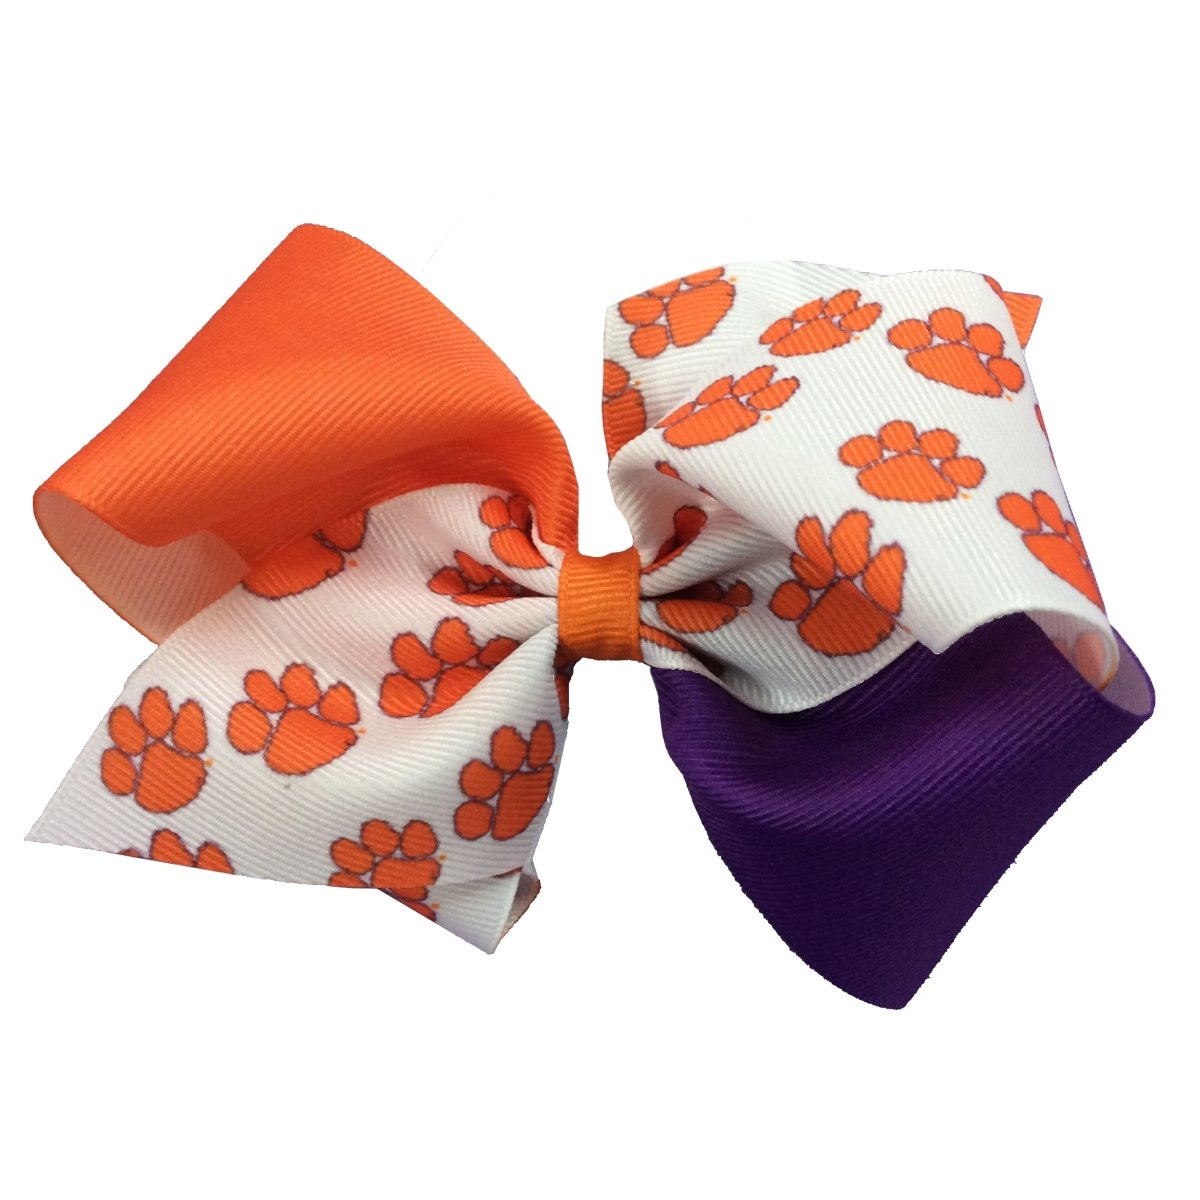 Wee Ones Mini Clemson Tigers Orange - Mr. Knickerbocker